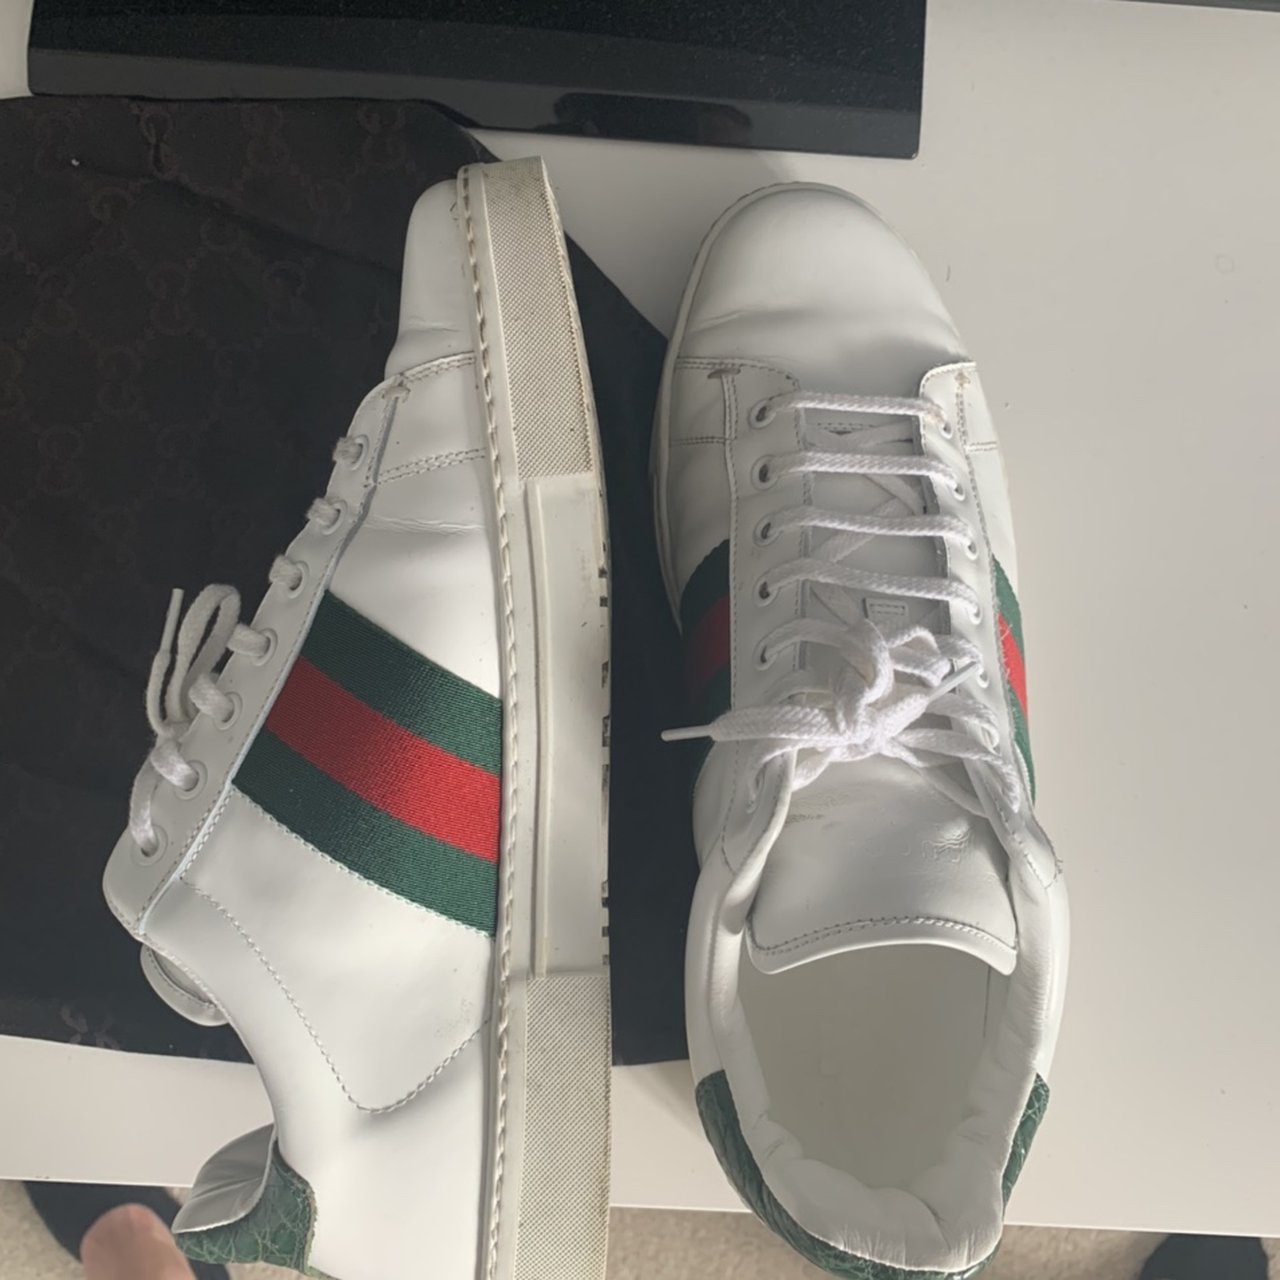 Vintage Gucci ace trainers from 2005